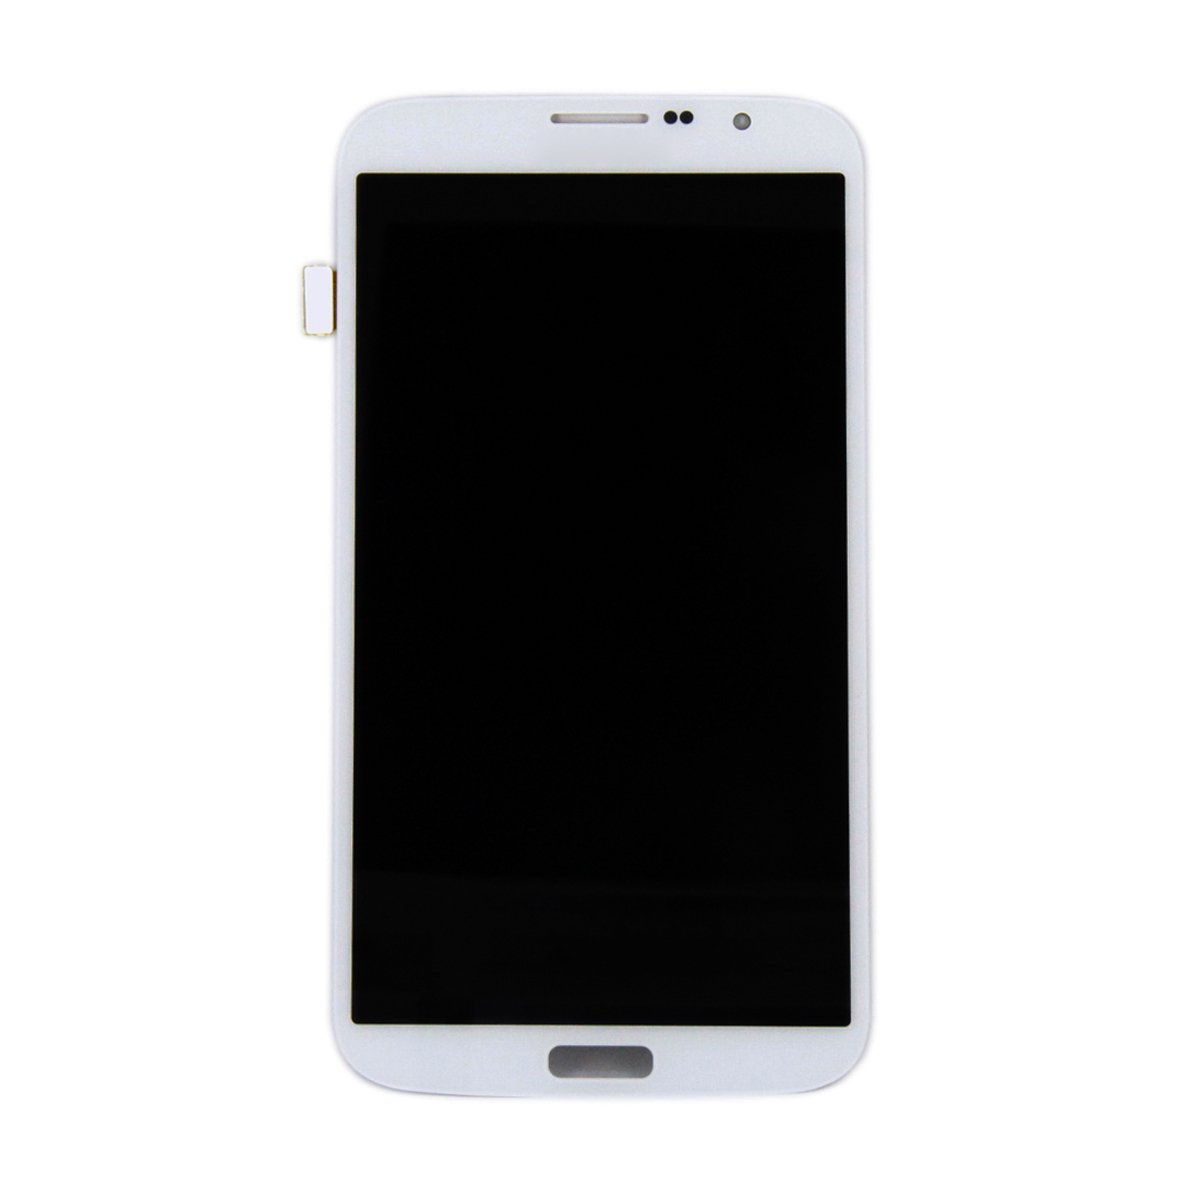 Lcd Display Touch Digitizer Screen For Samsung Galaxy Mega 63 Touchscreen J100 J100h J1 White Oem I9200 I9205 I9208 P729 E310s Electronics